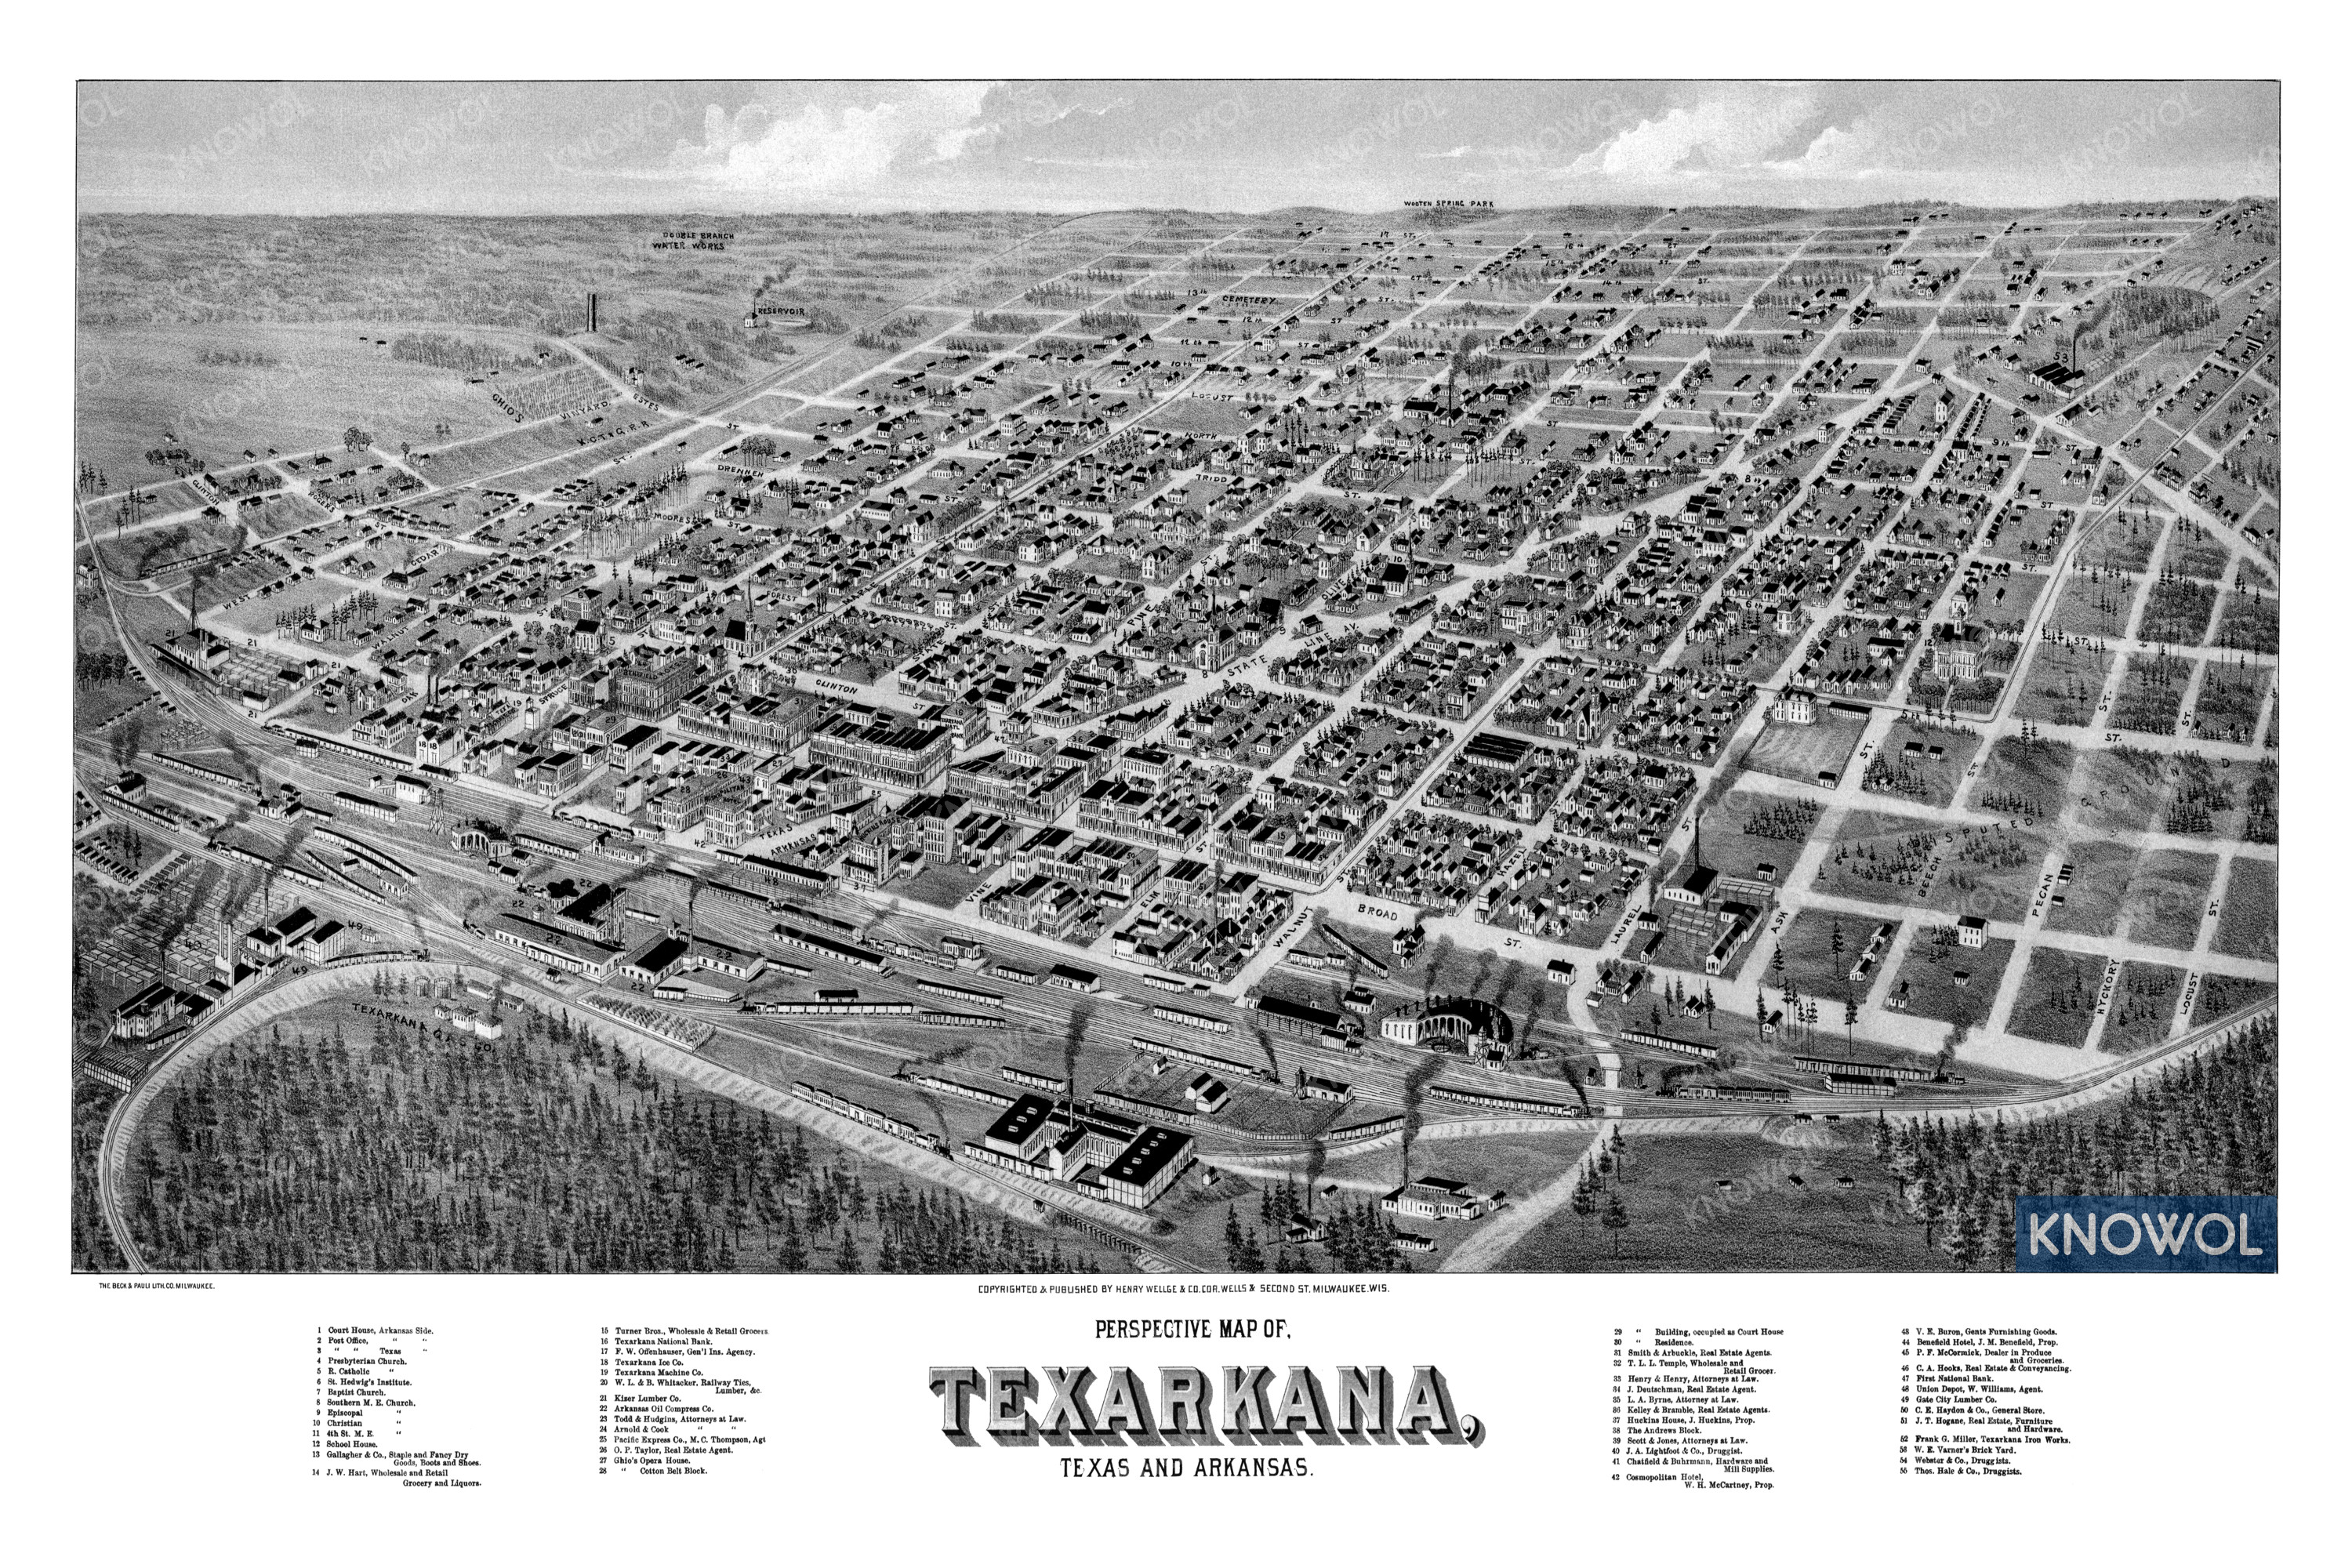 Historic old map of Texarkana, Texas and Arkansas. The map is in black and white and shows a bird's eye view of the area as it looked in 1888.